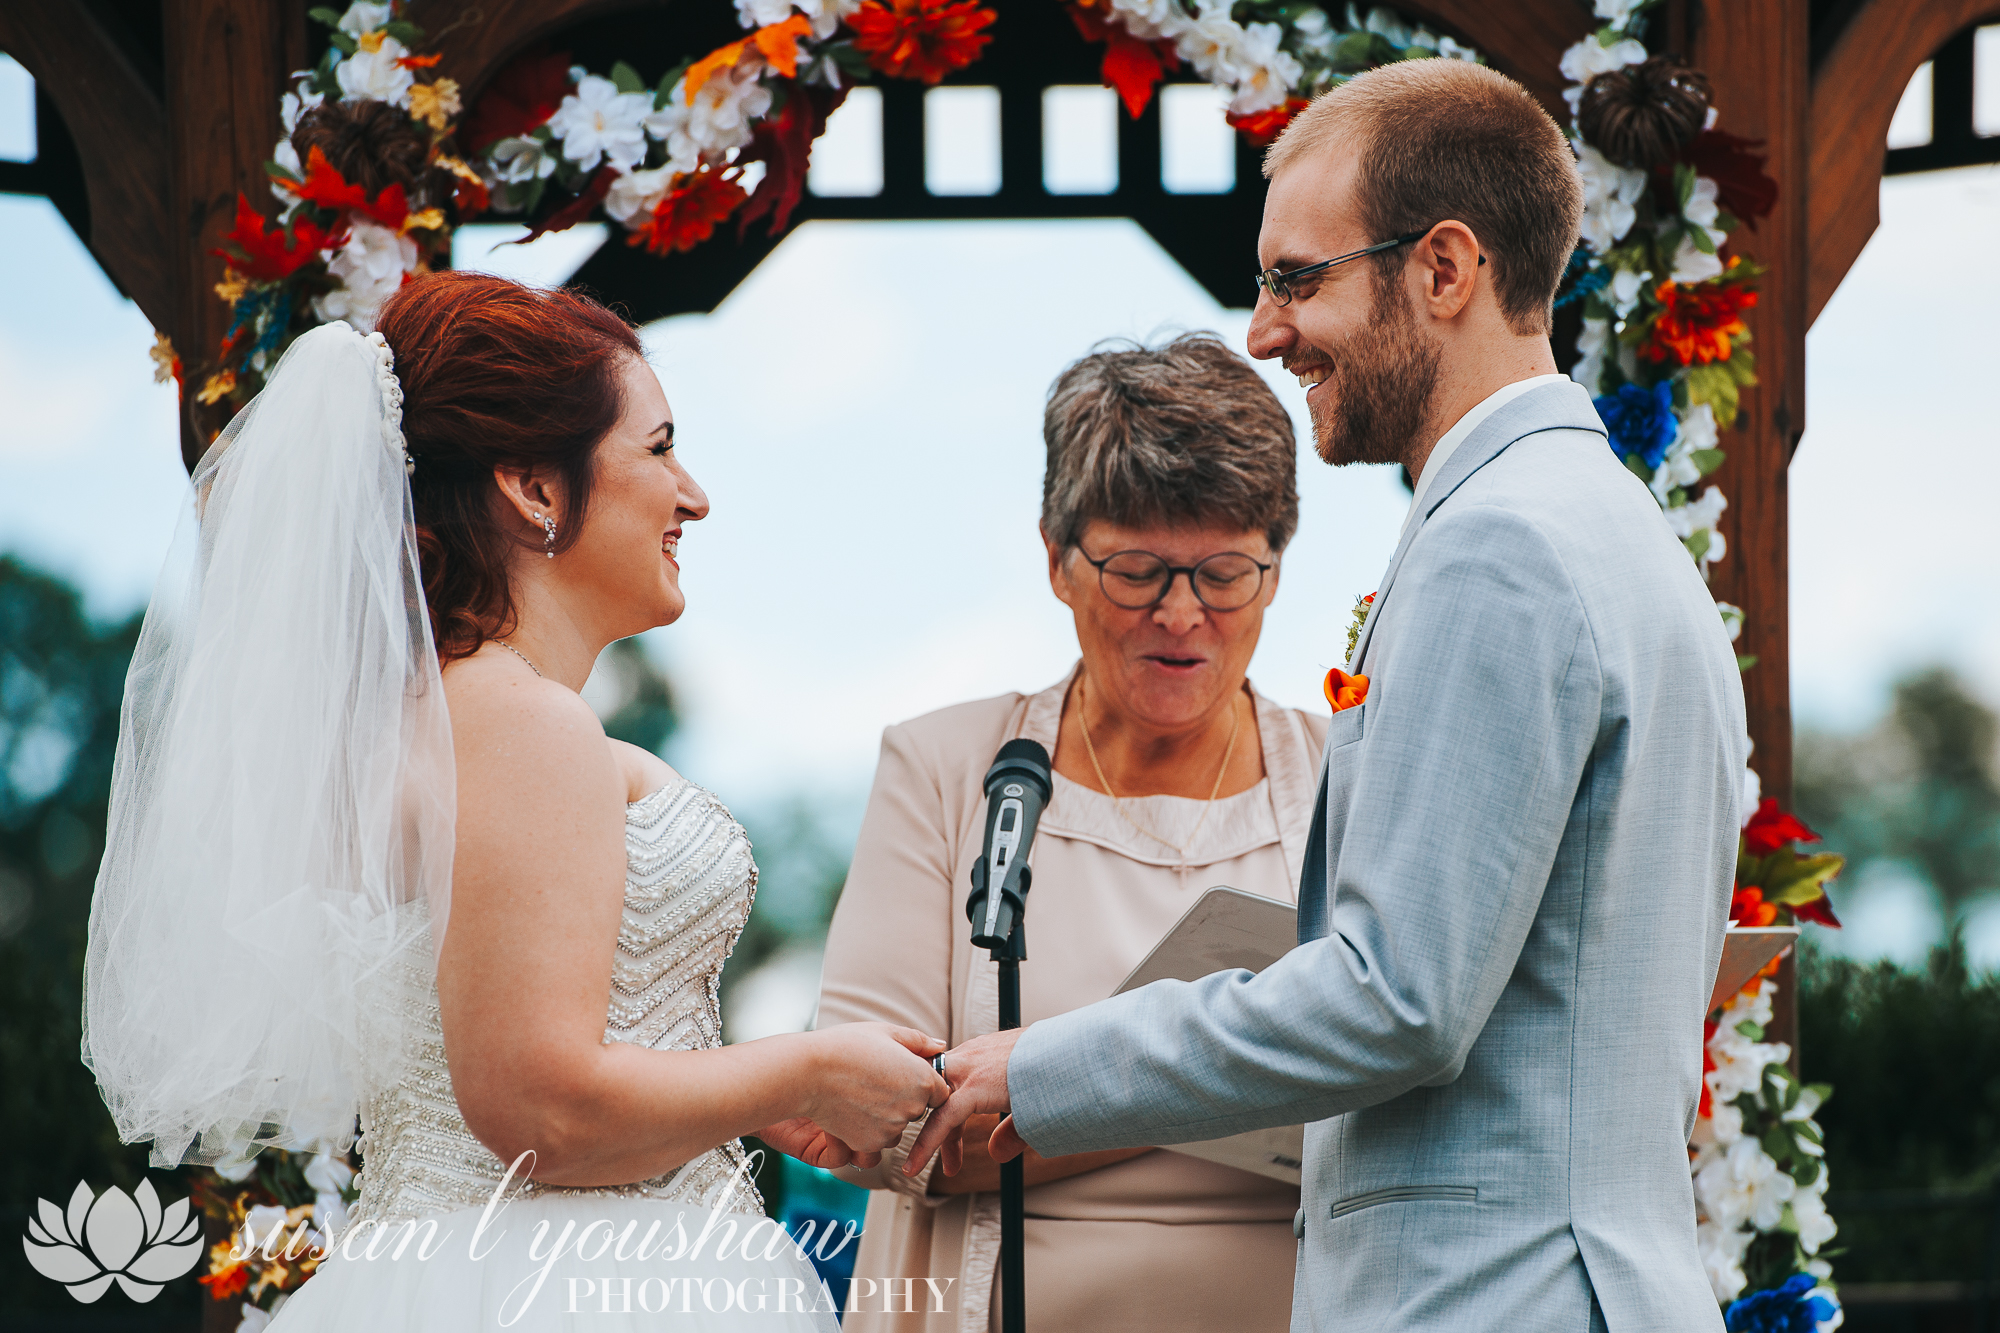 BLOG Kelly and DJ Roberts 08-25-2018 SLY Photography LLC-50.jpg